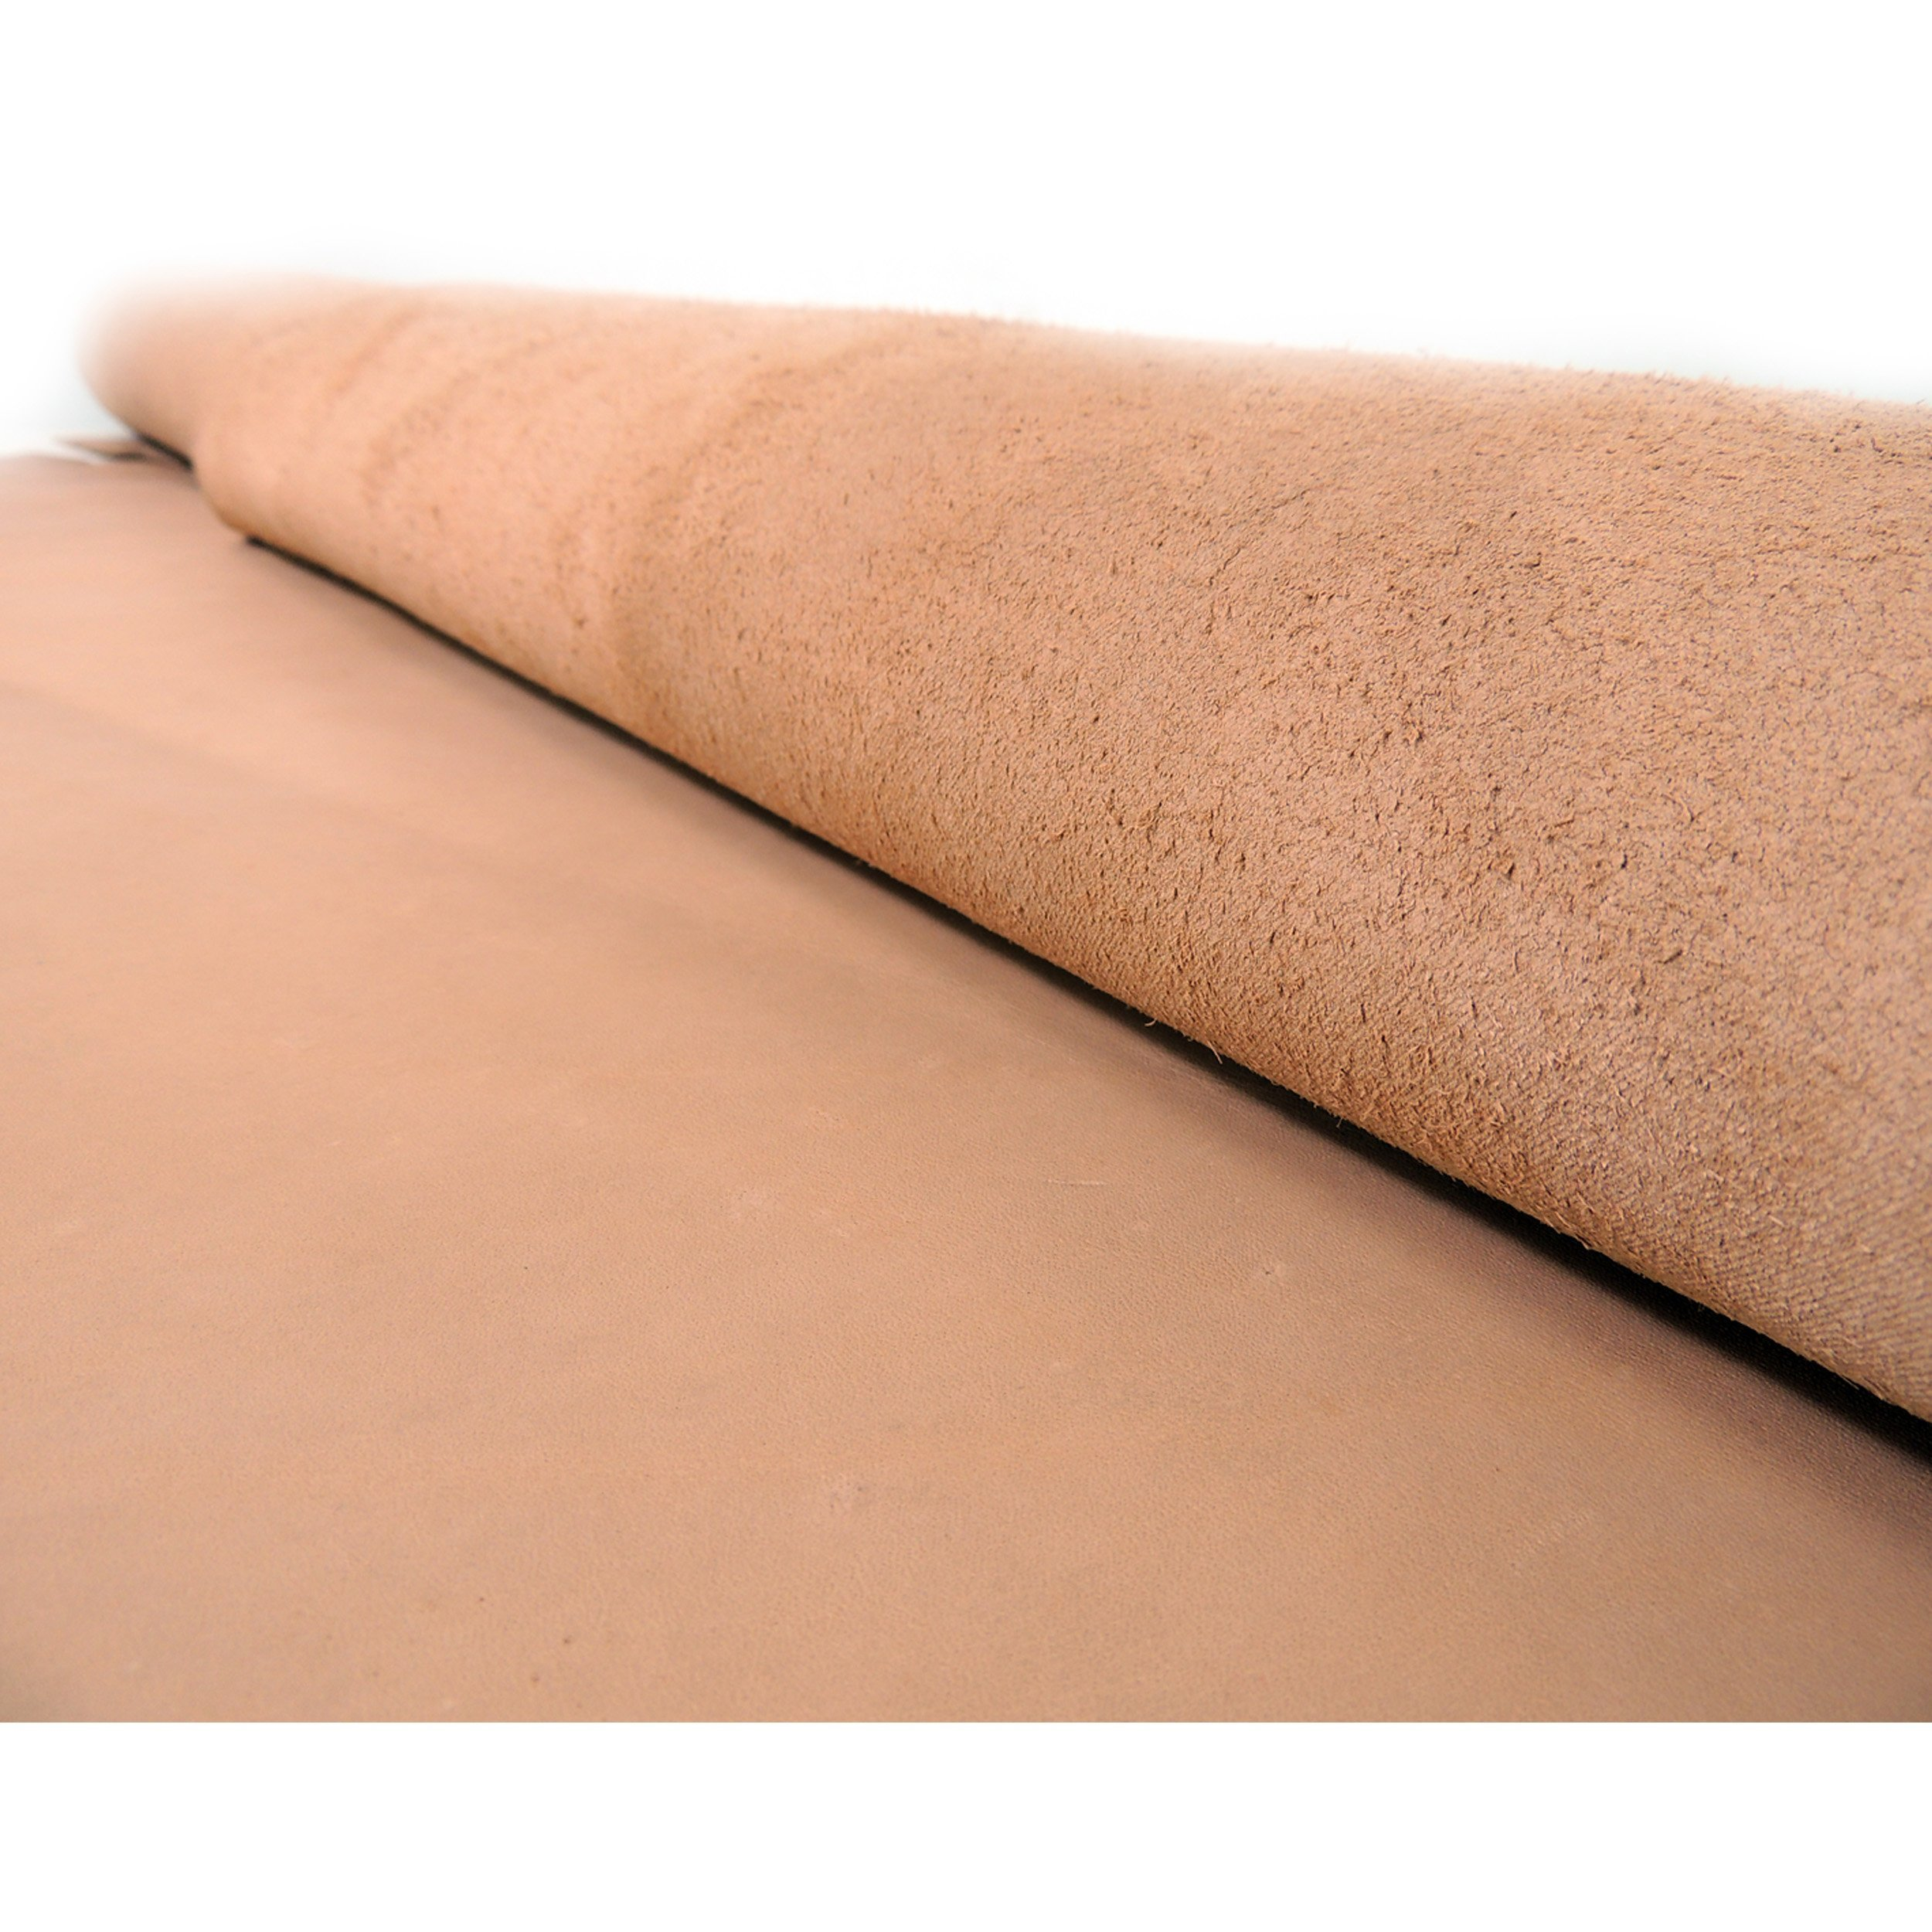 Whole Suede Skin 7 to 10 SF REED Leather HIDES Suede - Brown Various Colors